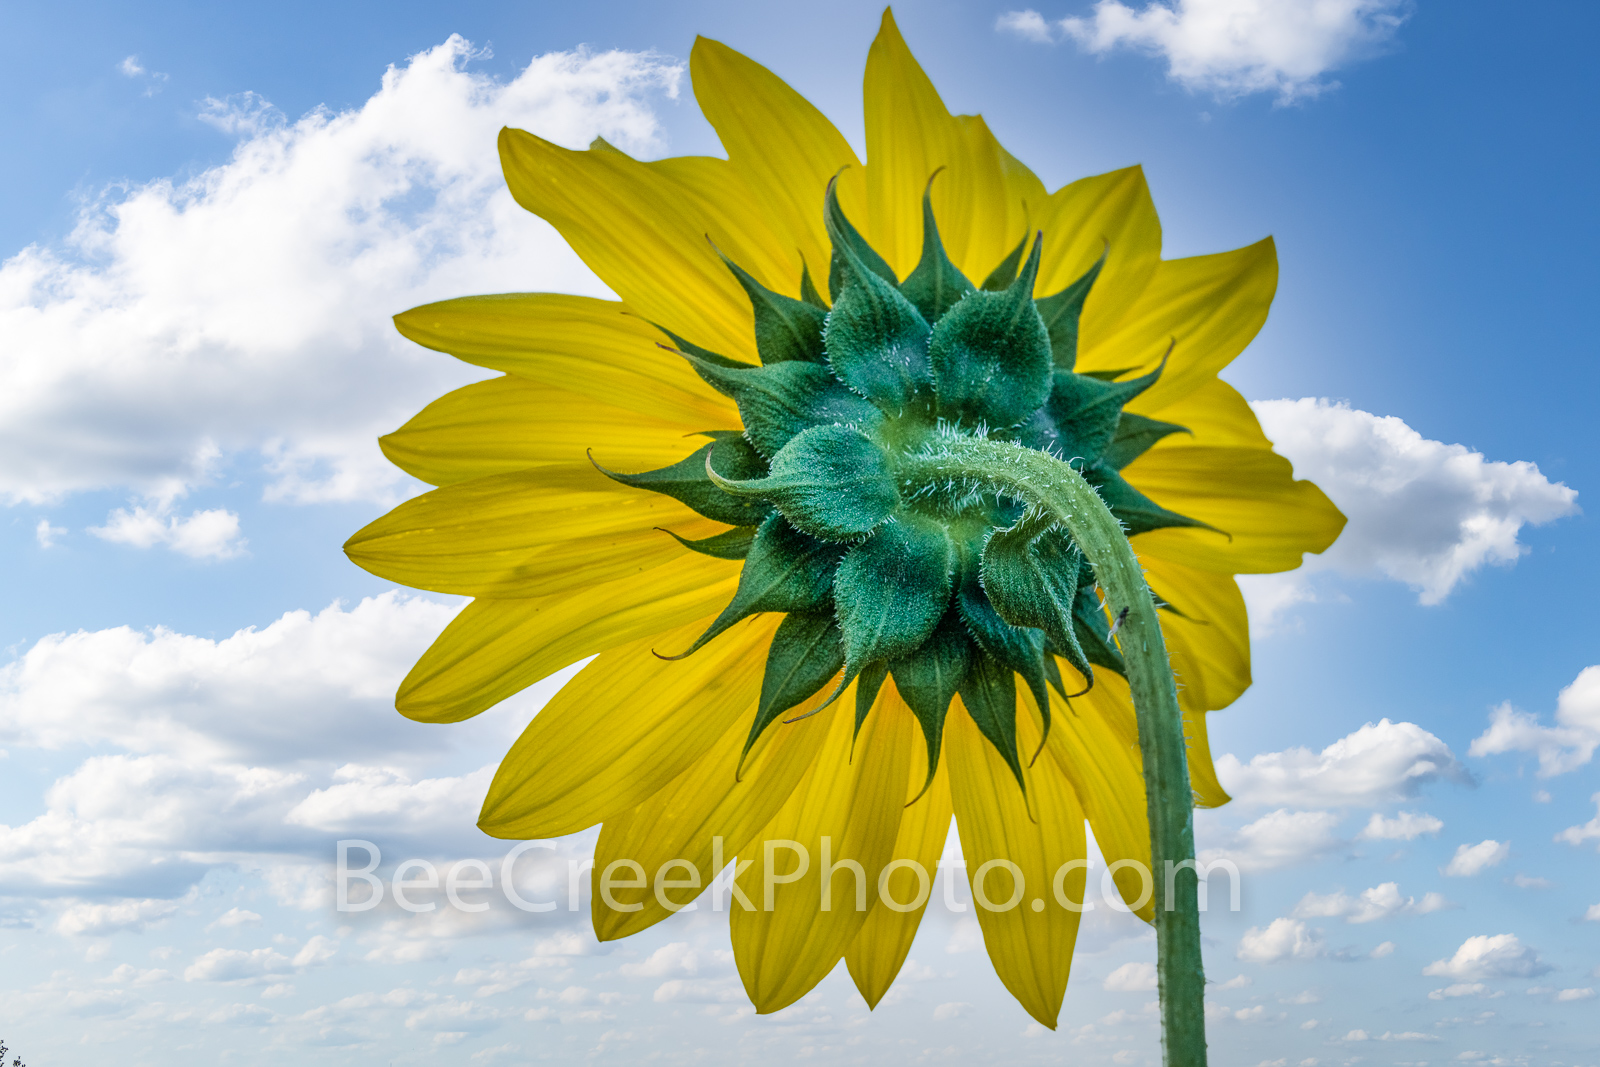 Texas Sunflower with Sky Macro - We were driving through the Texas hill country near Fredricksburg when we spotted this small...